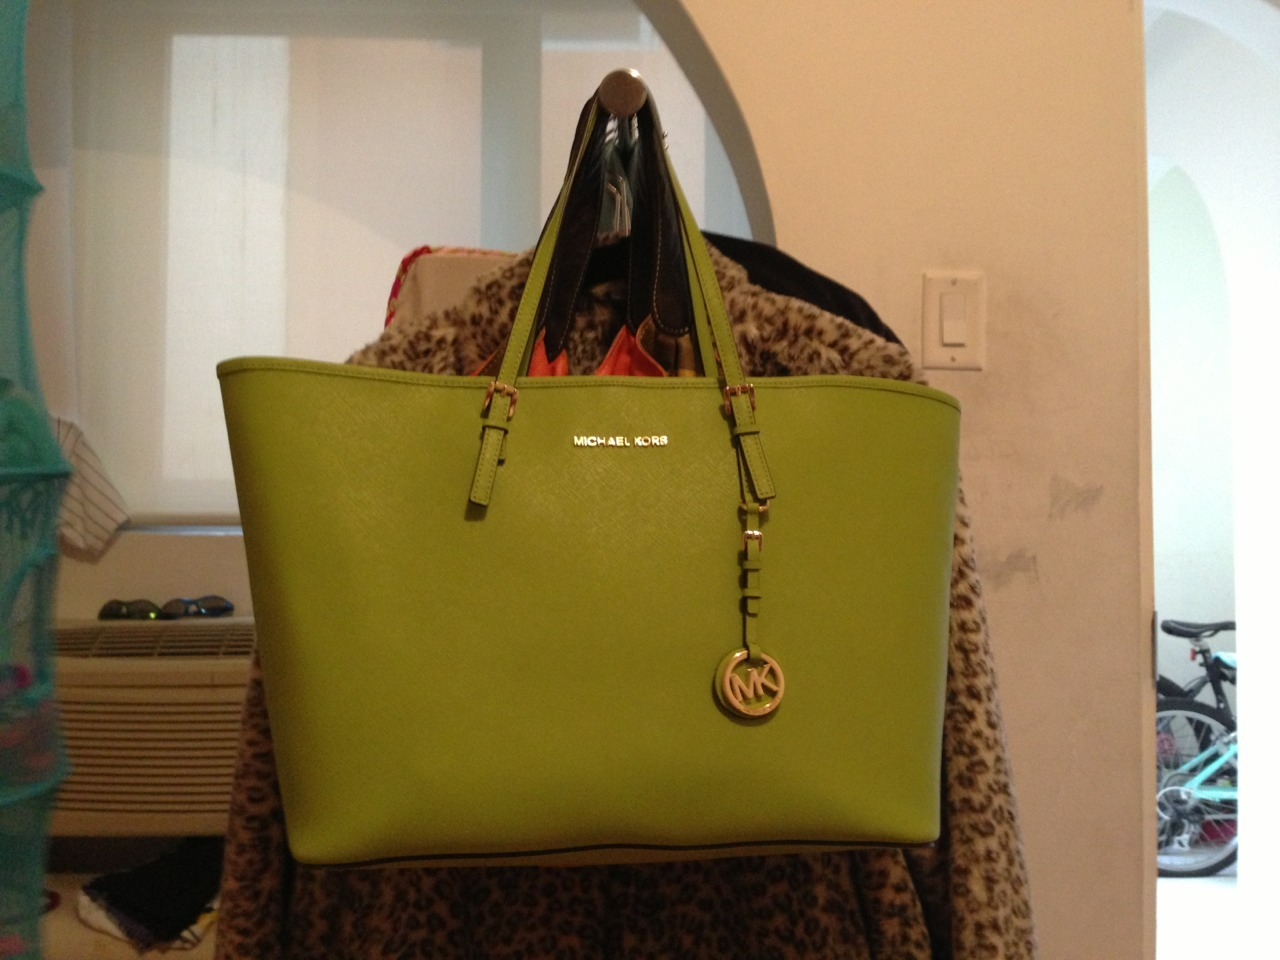 Michael Kors Jet Set Travel Tote is a great big bag. Its size is inbetween the Louis Vuitton MM and GM bag. I love it as an everyday bag and it will also be my number one travel bag. It can carry much more than one thinks and of you're thinking of buying it i really recommended. People tell me all the time that the quality is great and that they are glad that they bought it.   I choose the green color because it's a great color for spring and summer, but I can also mix it up in some winter and fall outfits. I adore the bag, the color, the size, everything, it's a great bag and I thing that it's a great spring bag with a great size.